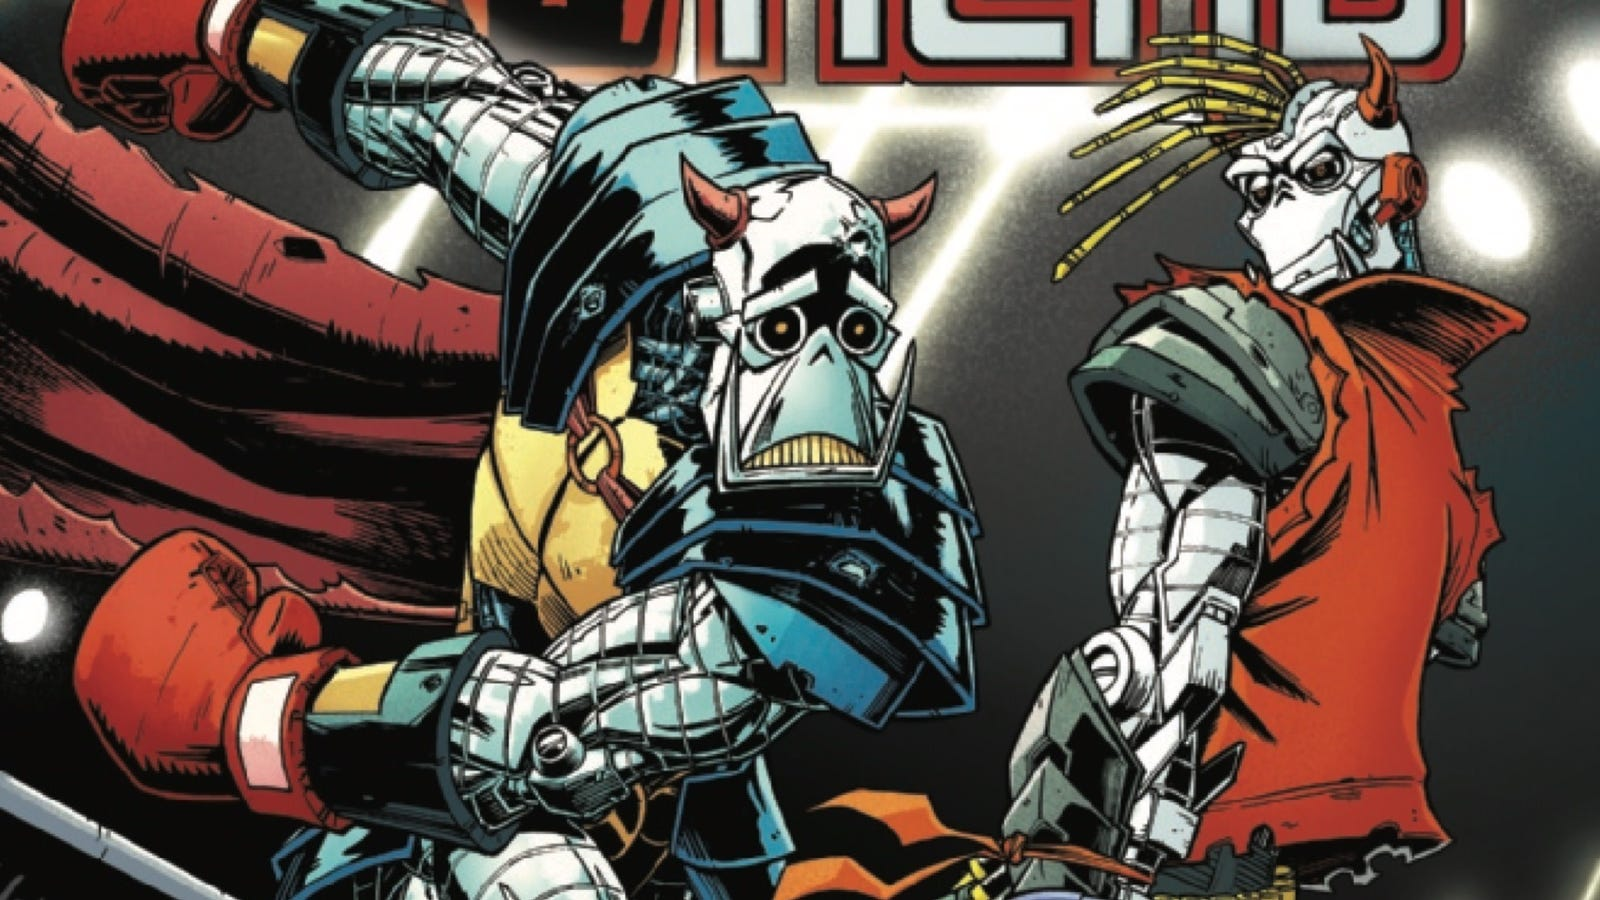 Death's Head and the Young Avengers blow up killer robots in this exclusive